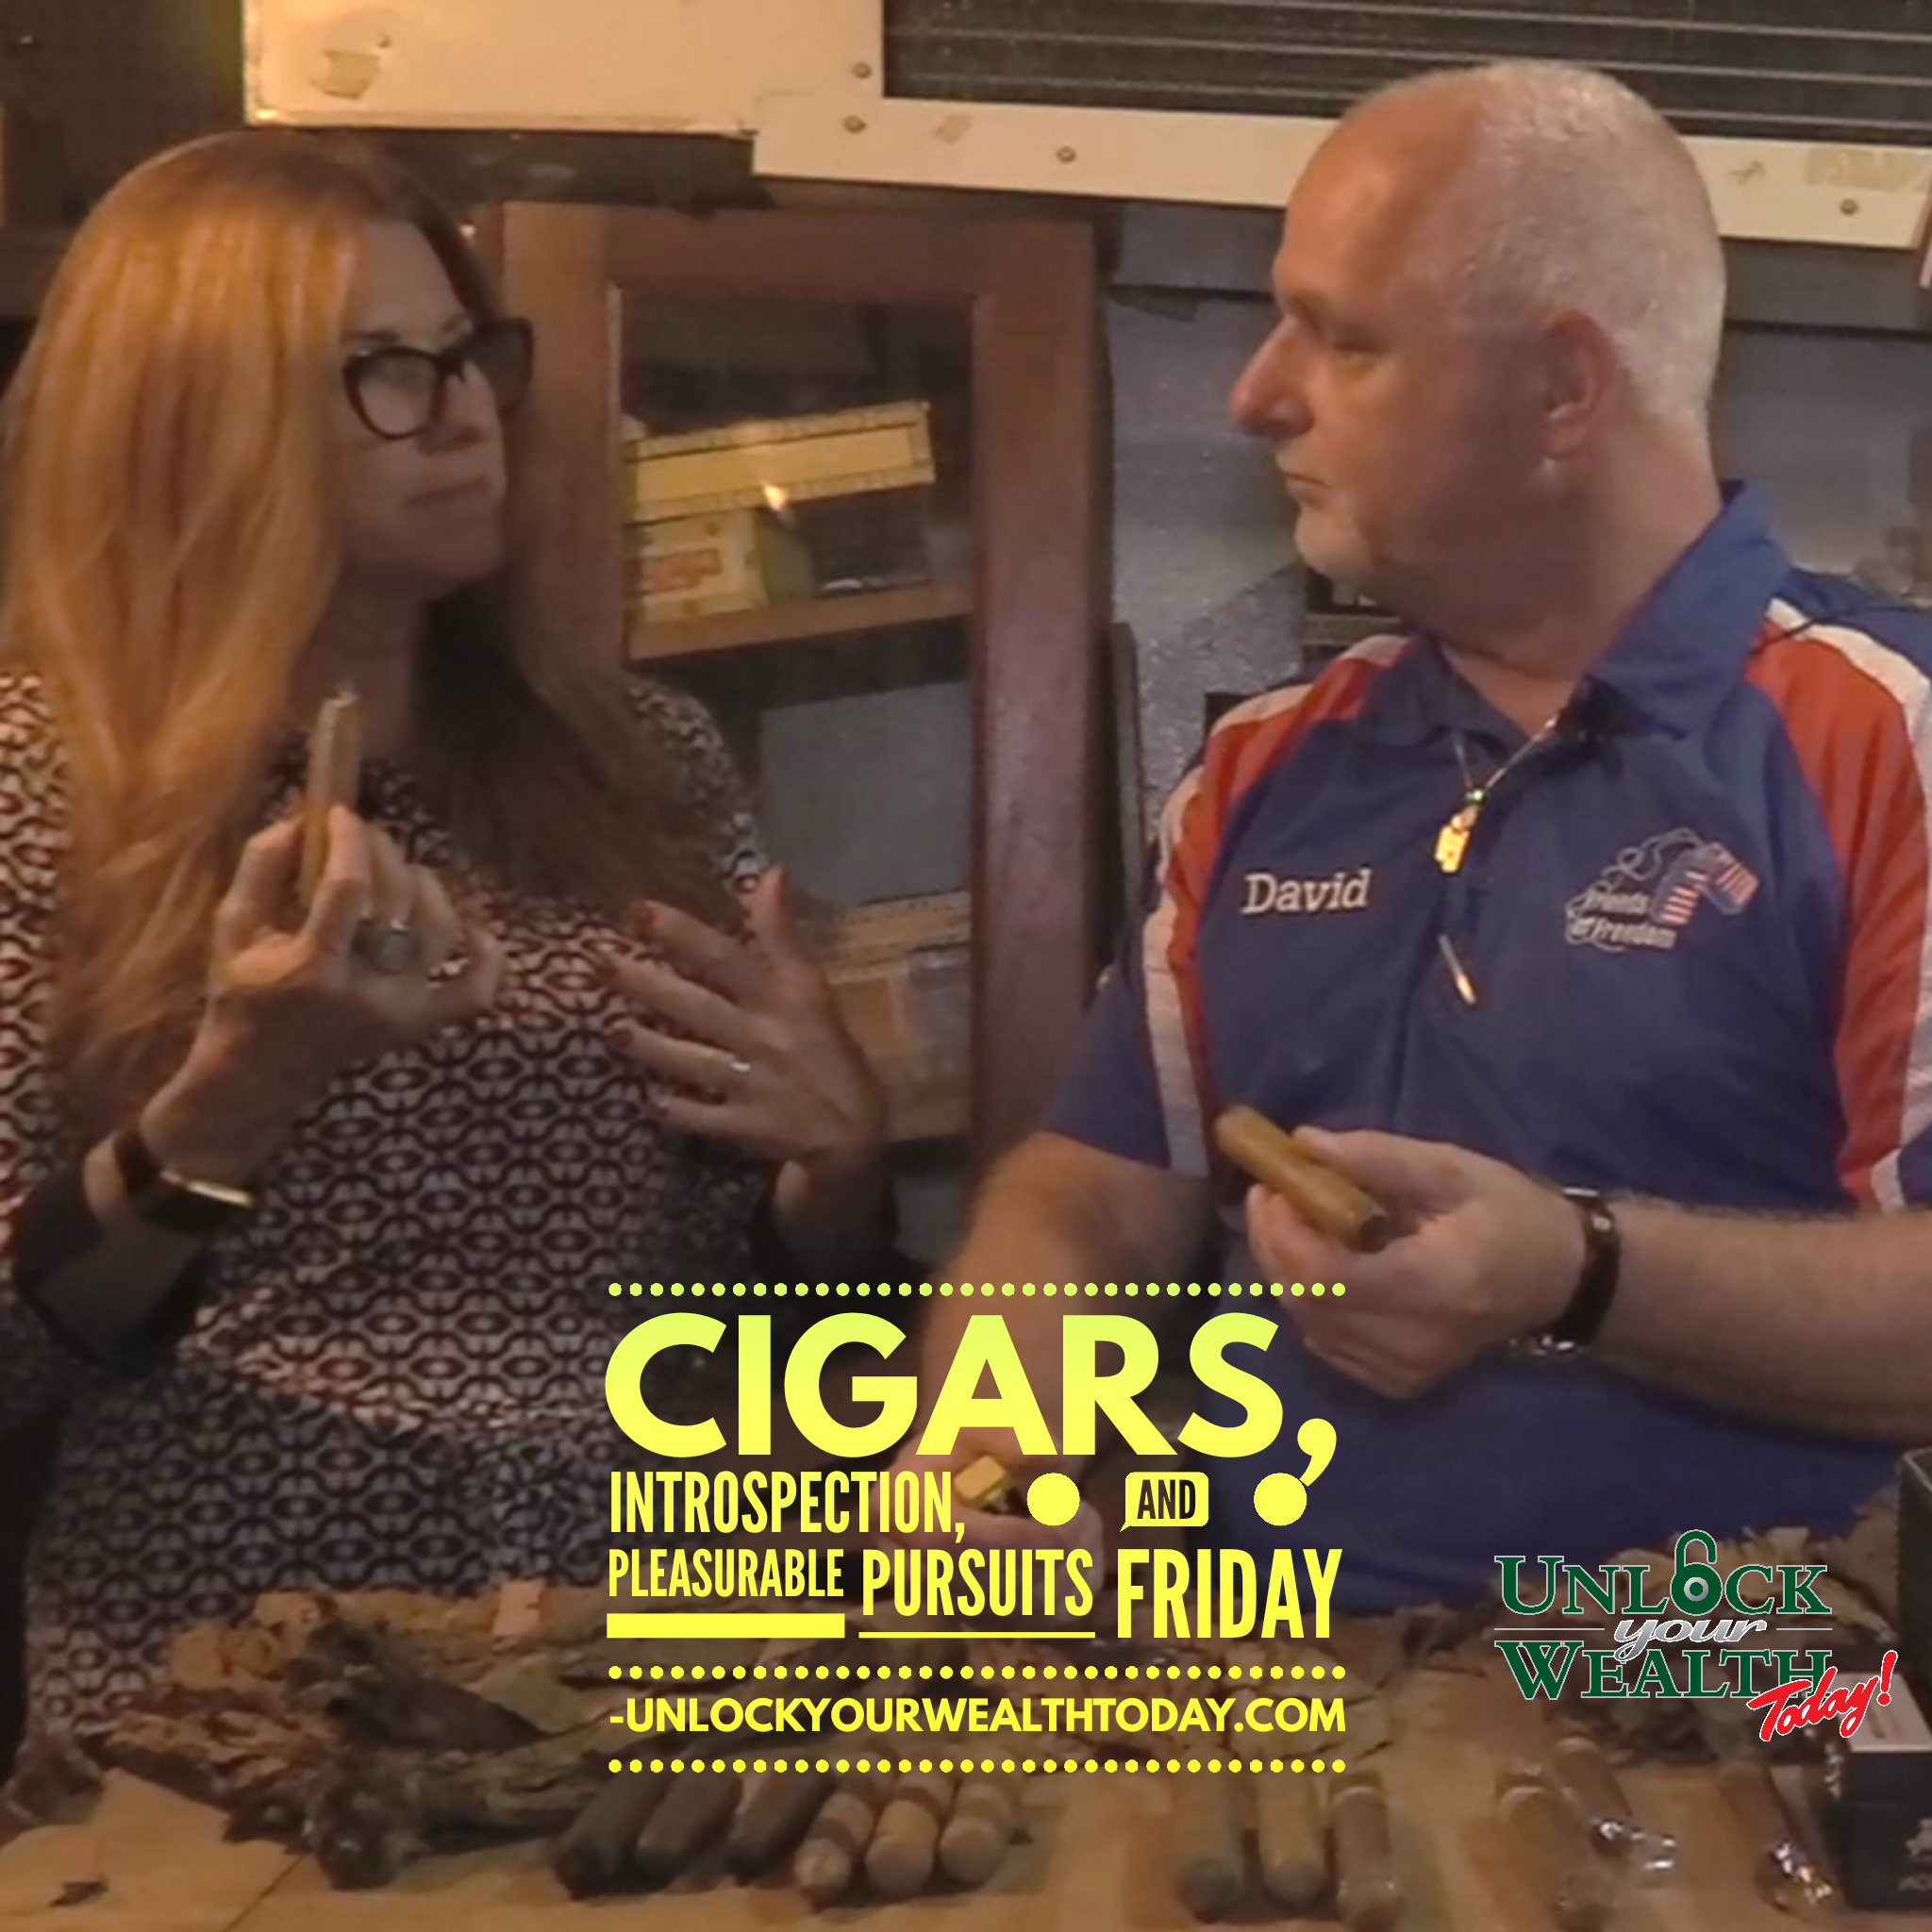 Artwork for Cigars, Introspection and the Fine Art of Cigar Smoking with David Haddad